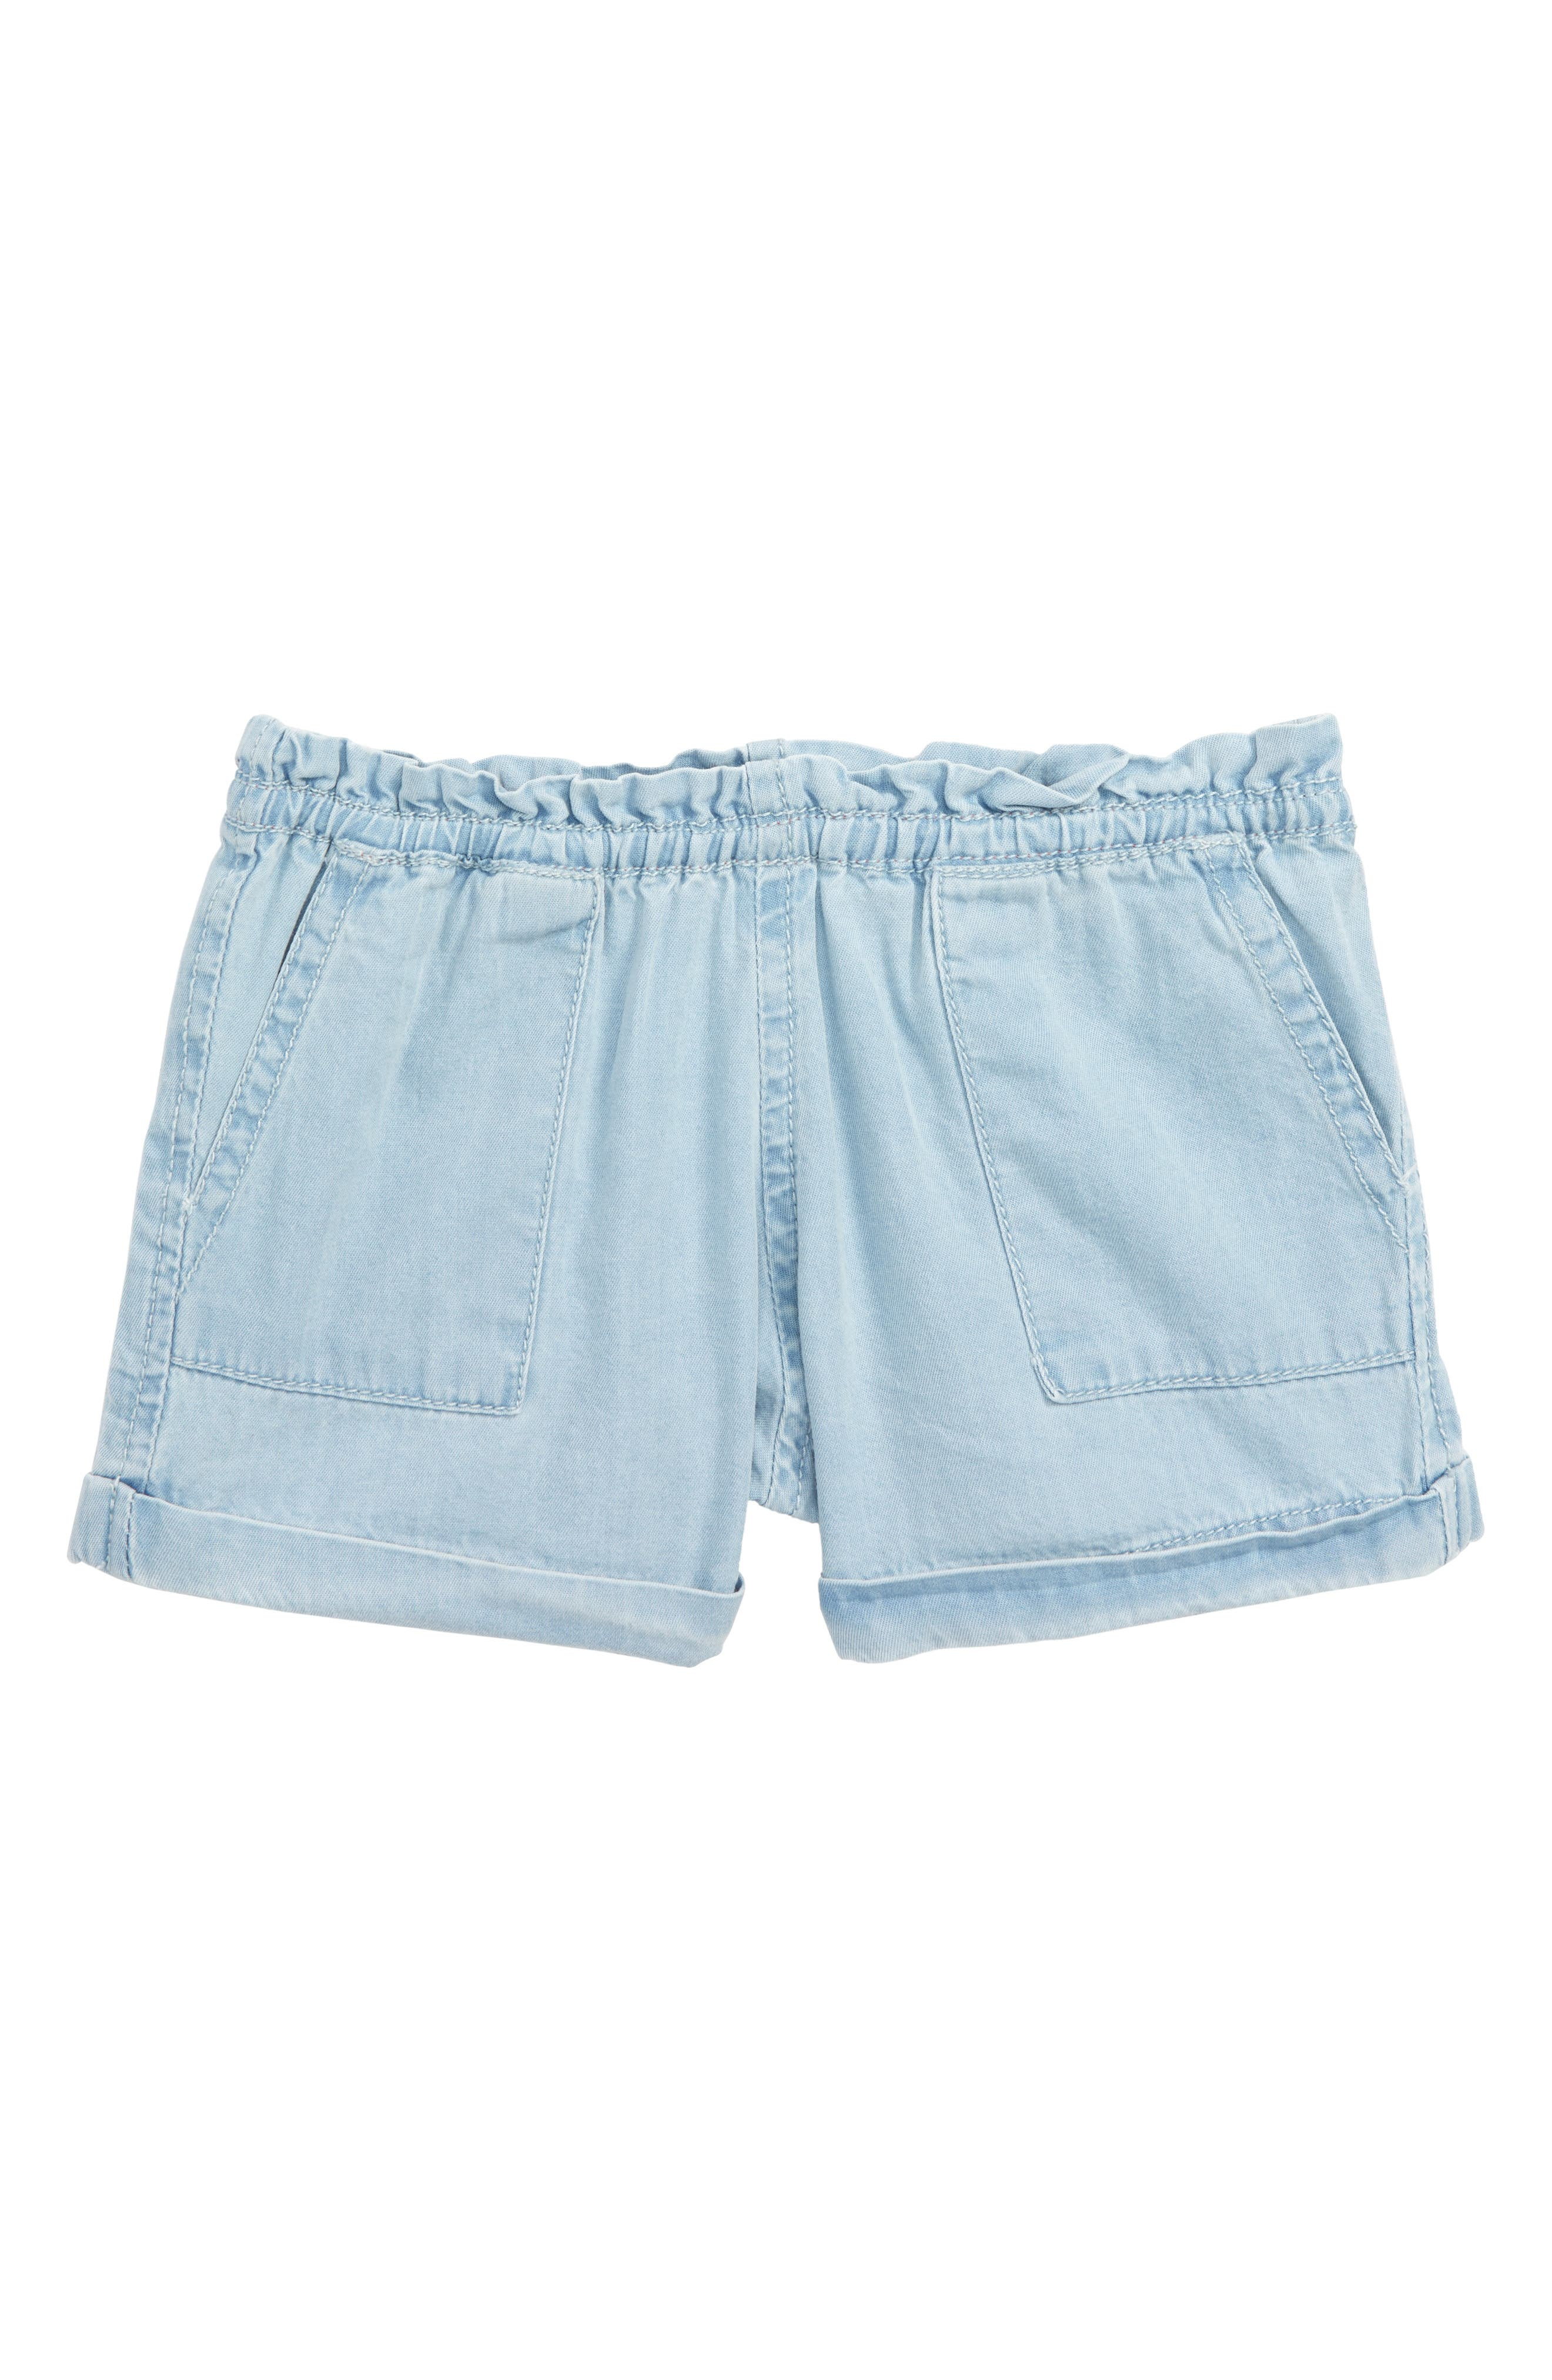 Jojo Chambray Shorts,                             Main thumbnail 1, color,                             450